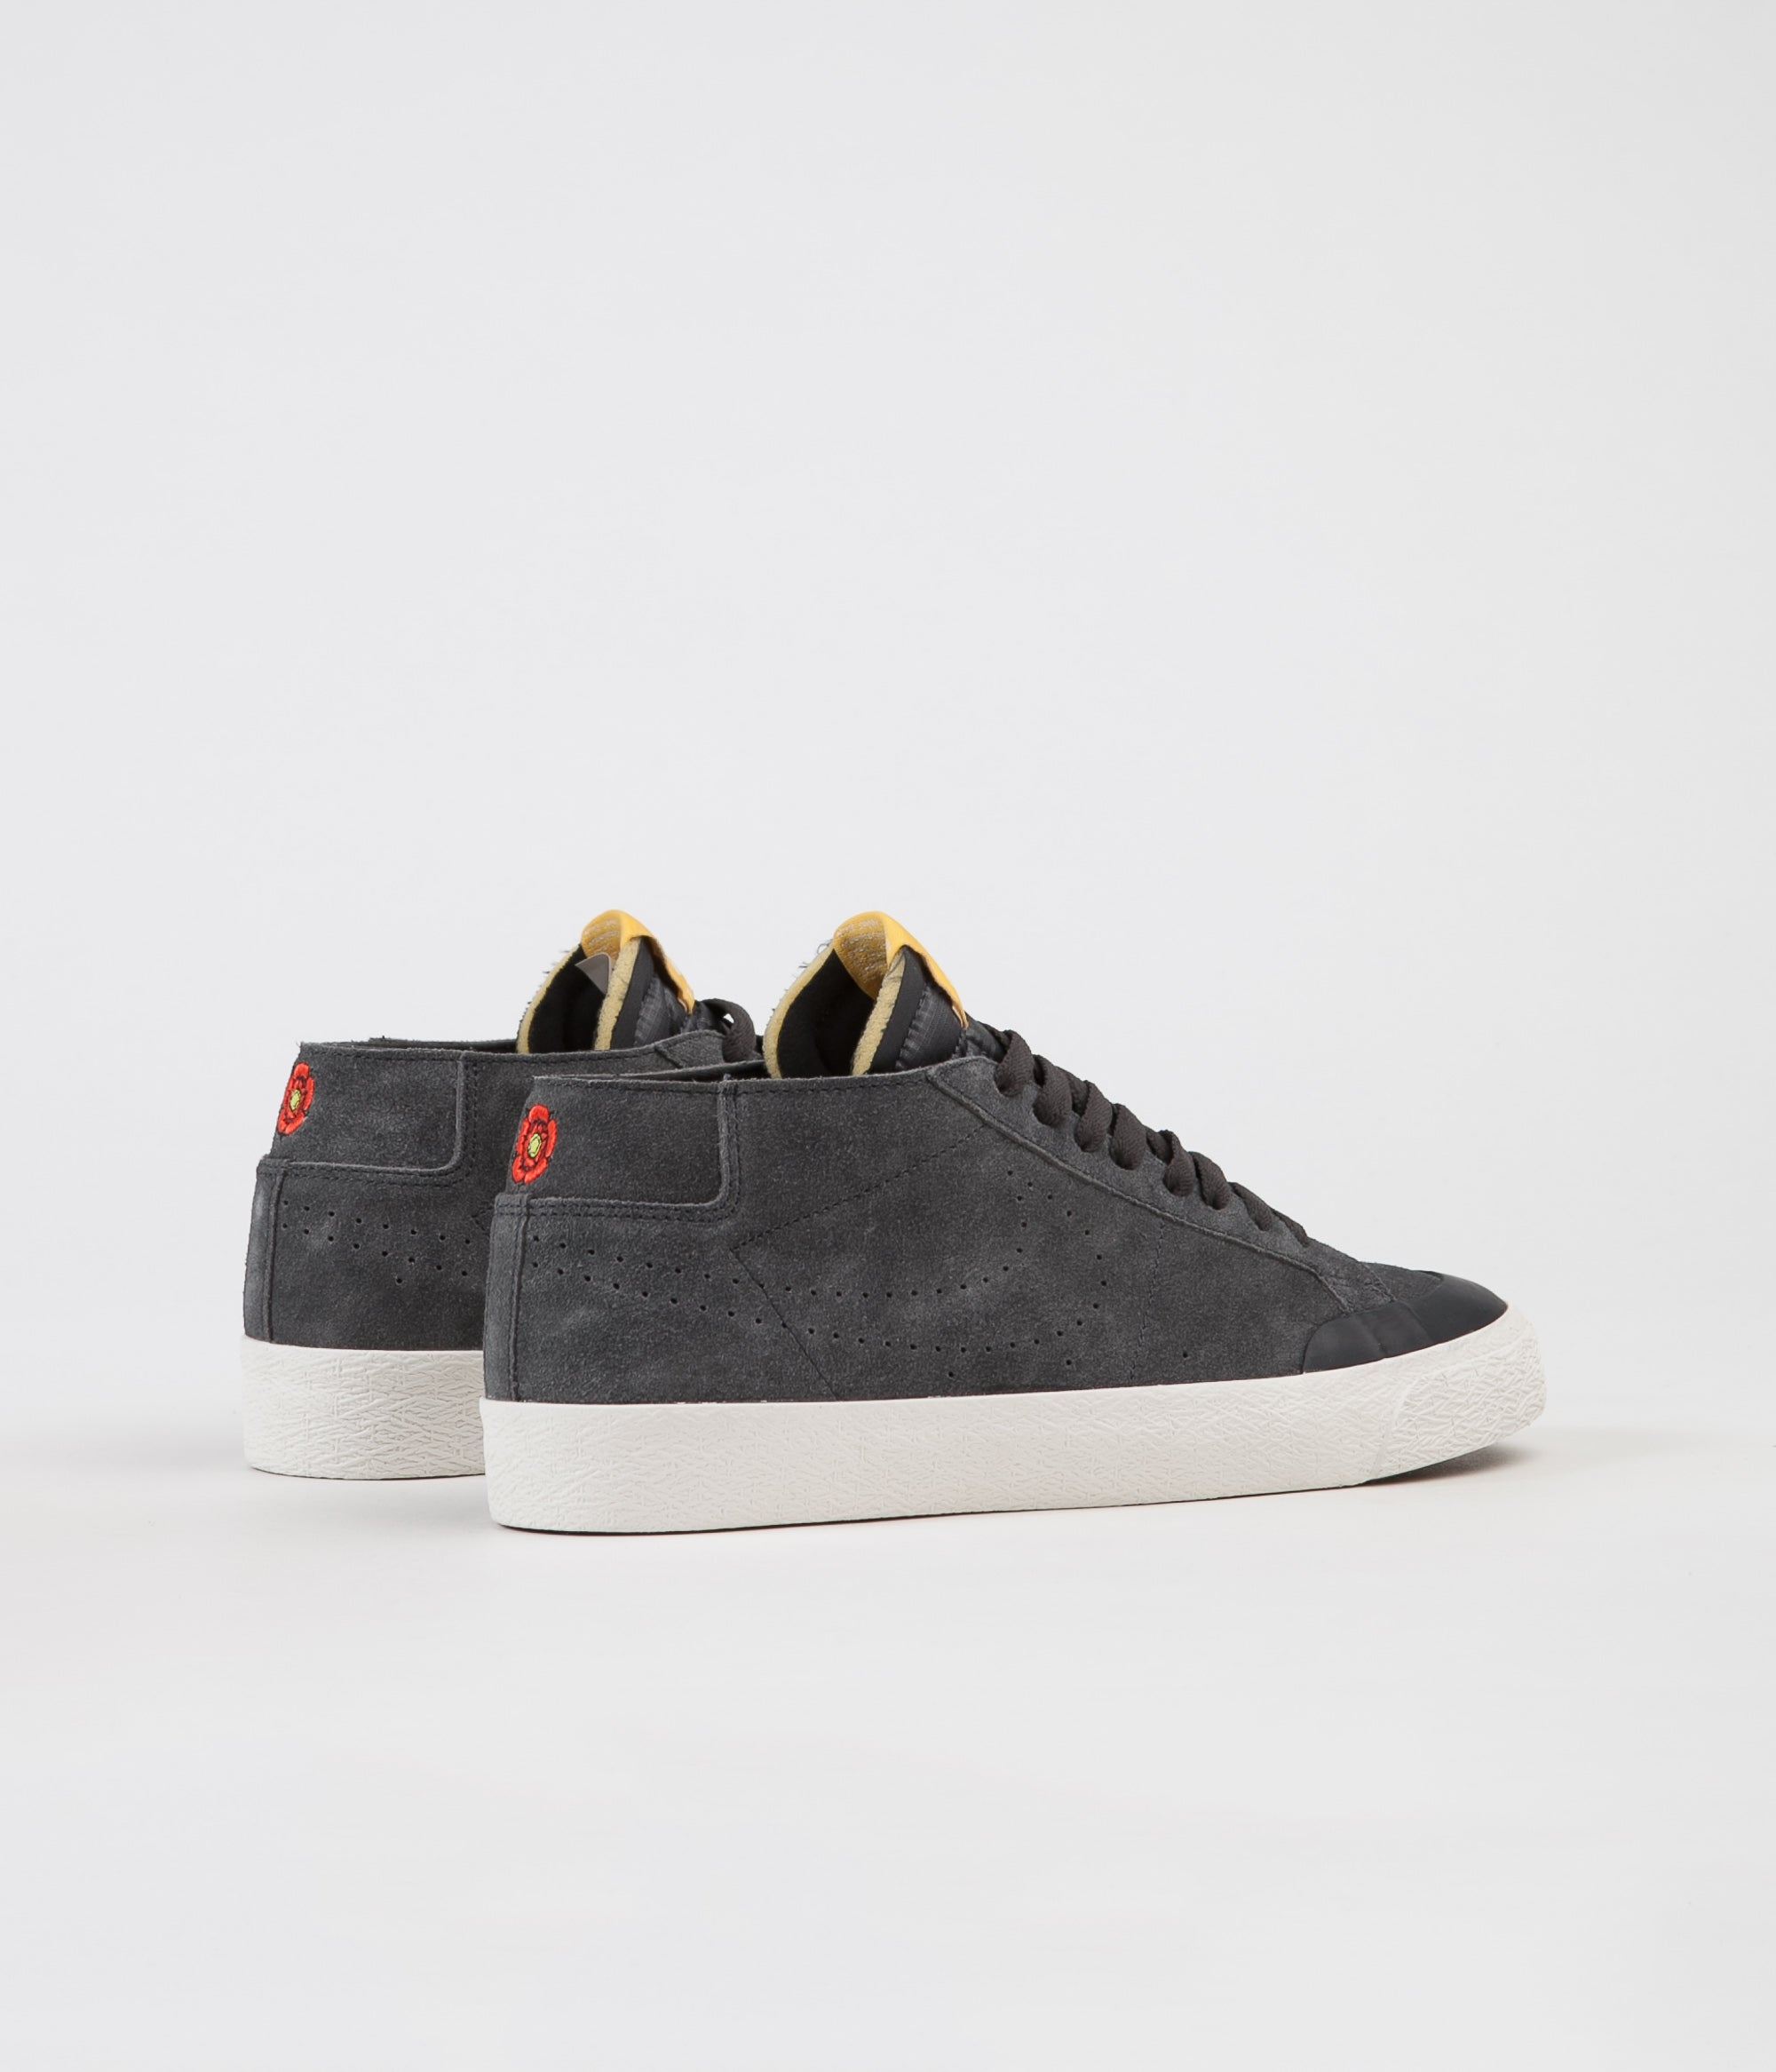 37cffce17d49 ... Nike SB Blazer Chukka XT Shoes - Anthracite   Anthracite - Fir ...